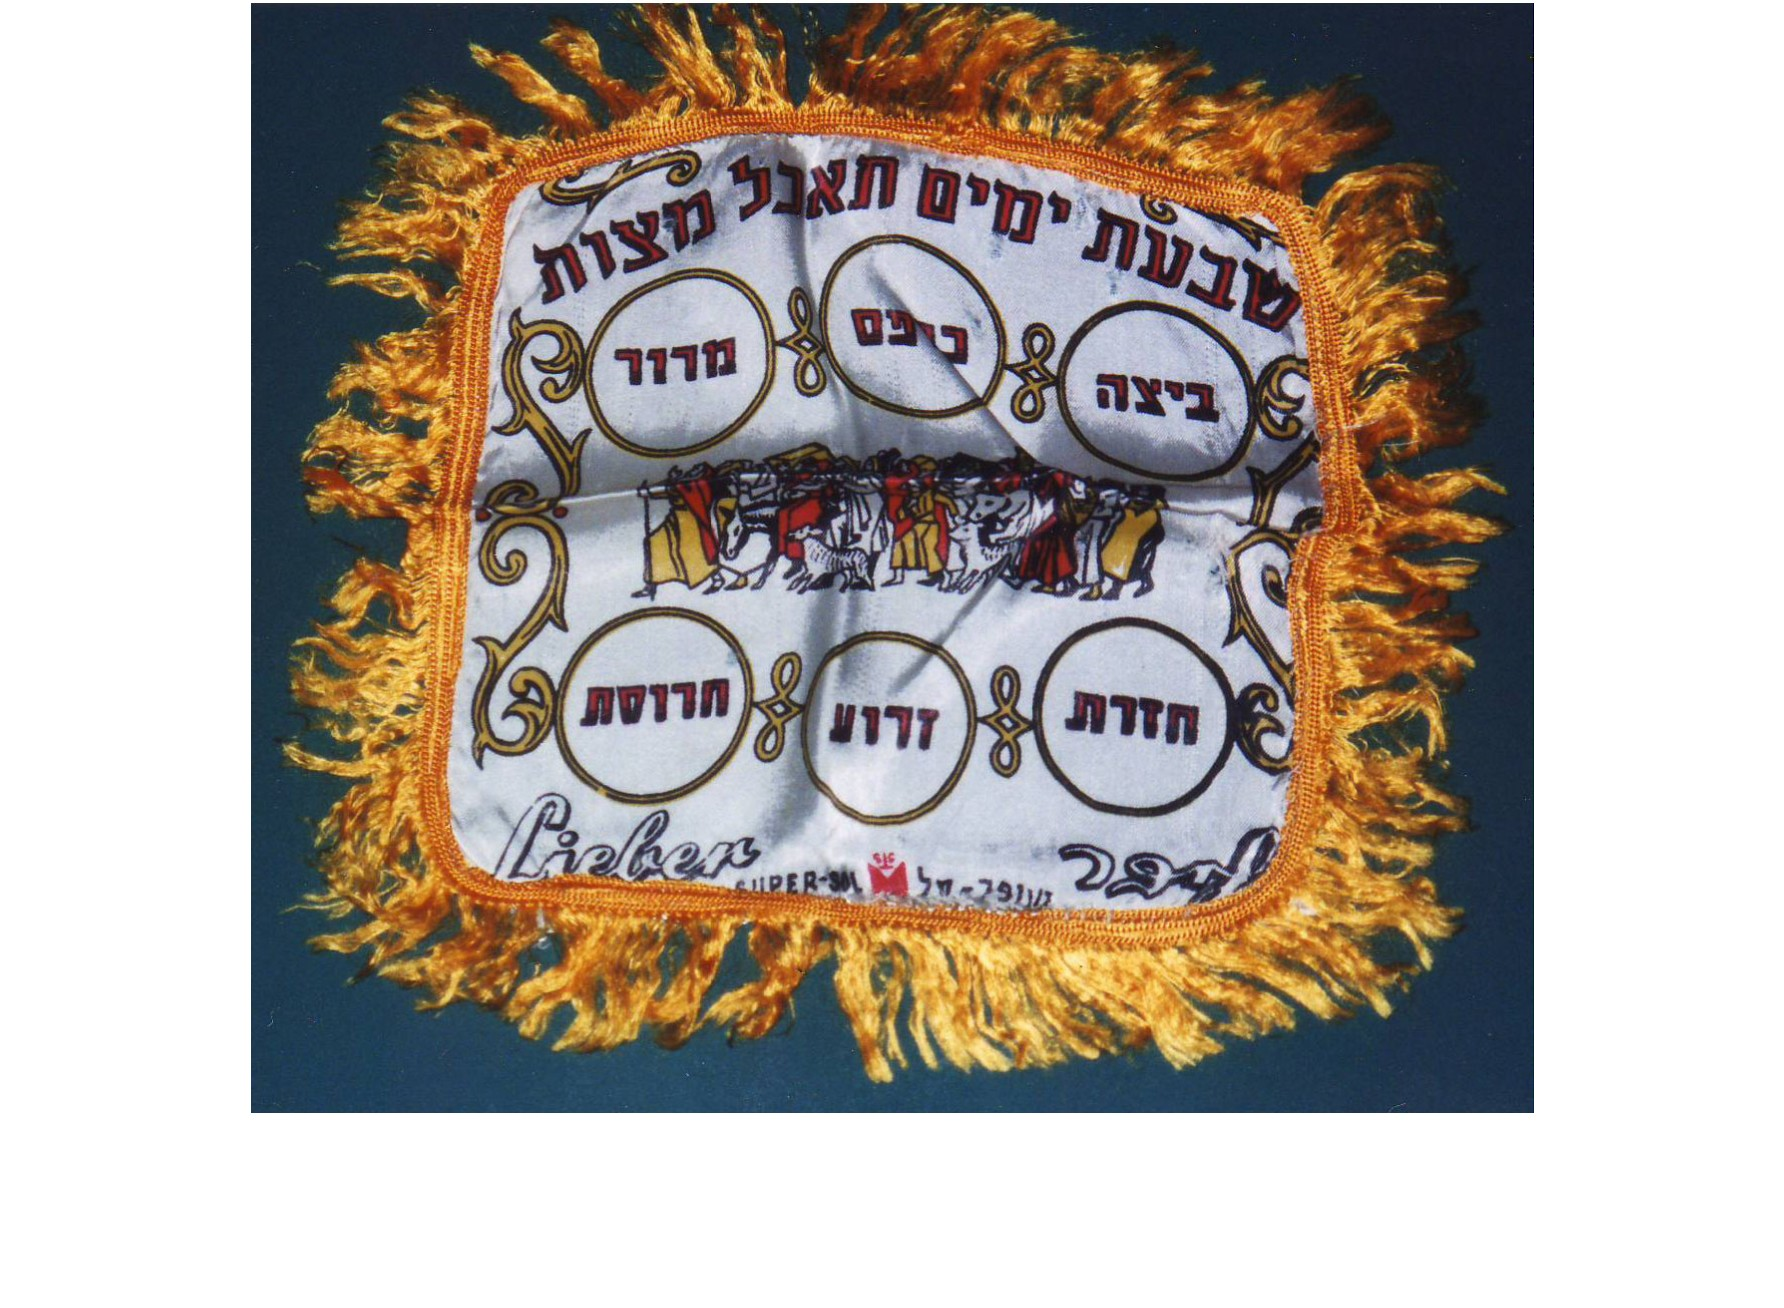 "<span class=""slider_description"">5 of 7. The significance of the Exodus and matzah inspired creation of Pesach artefacts, like this early 1900 matzah cover from The Great Synagogue Sydney.</span>"